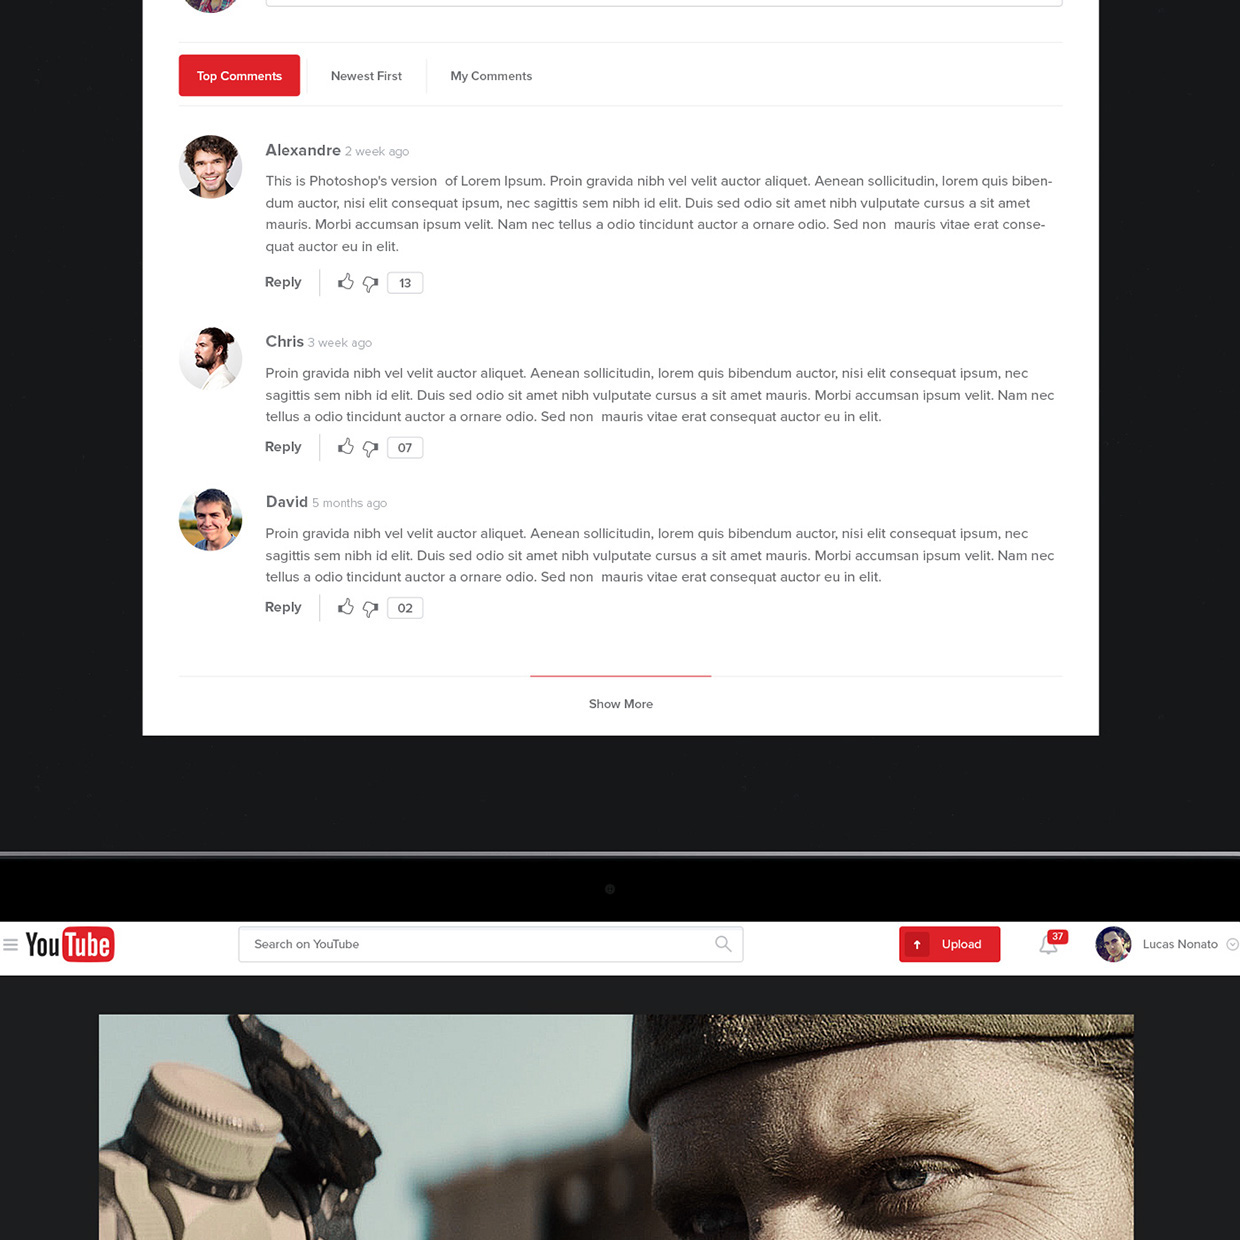 New UX Design Concept of YouTube 2015 By Lucas Nonato (12)